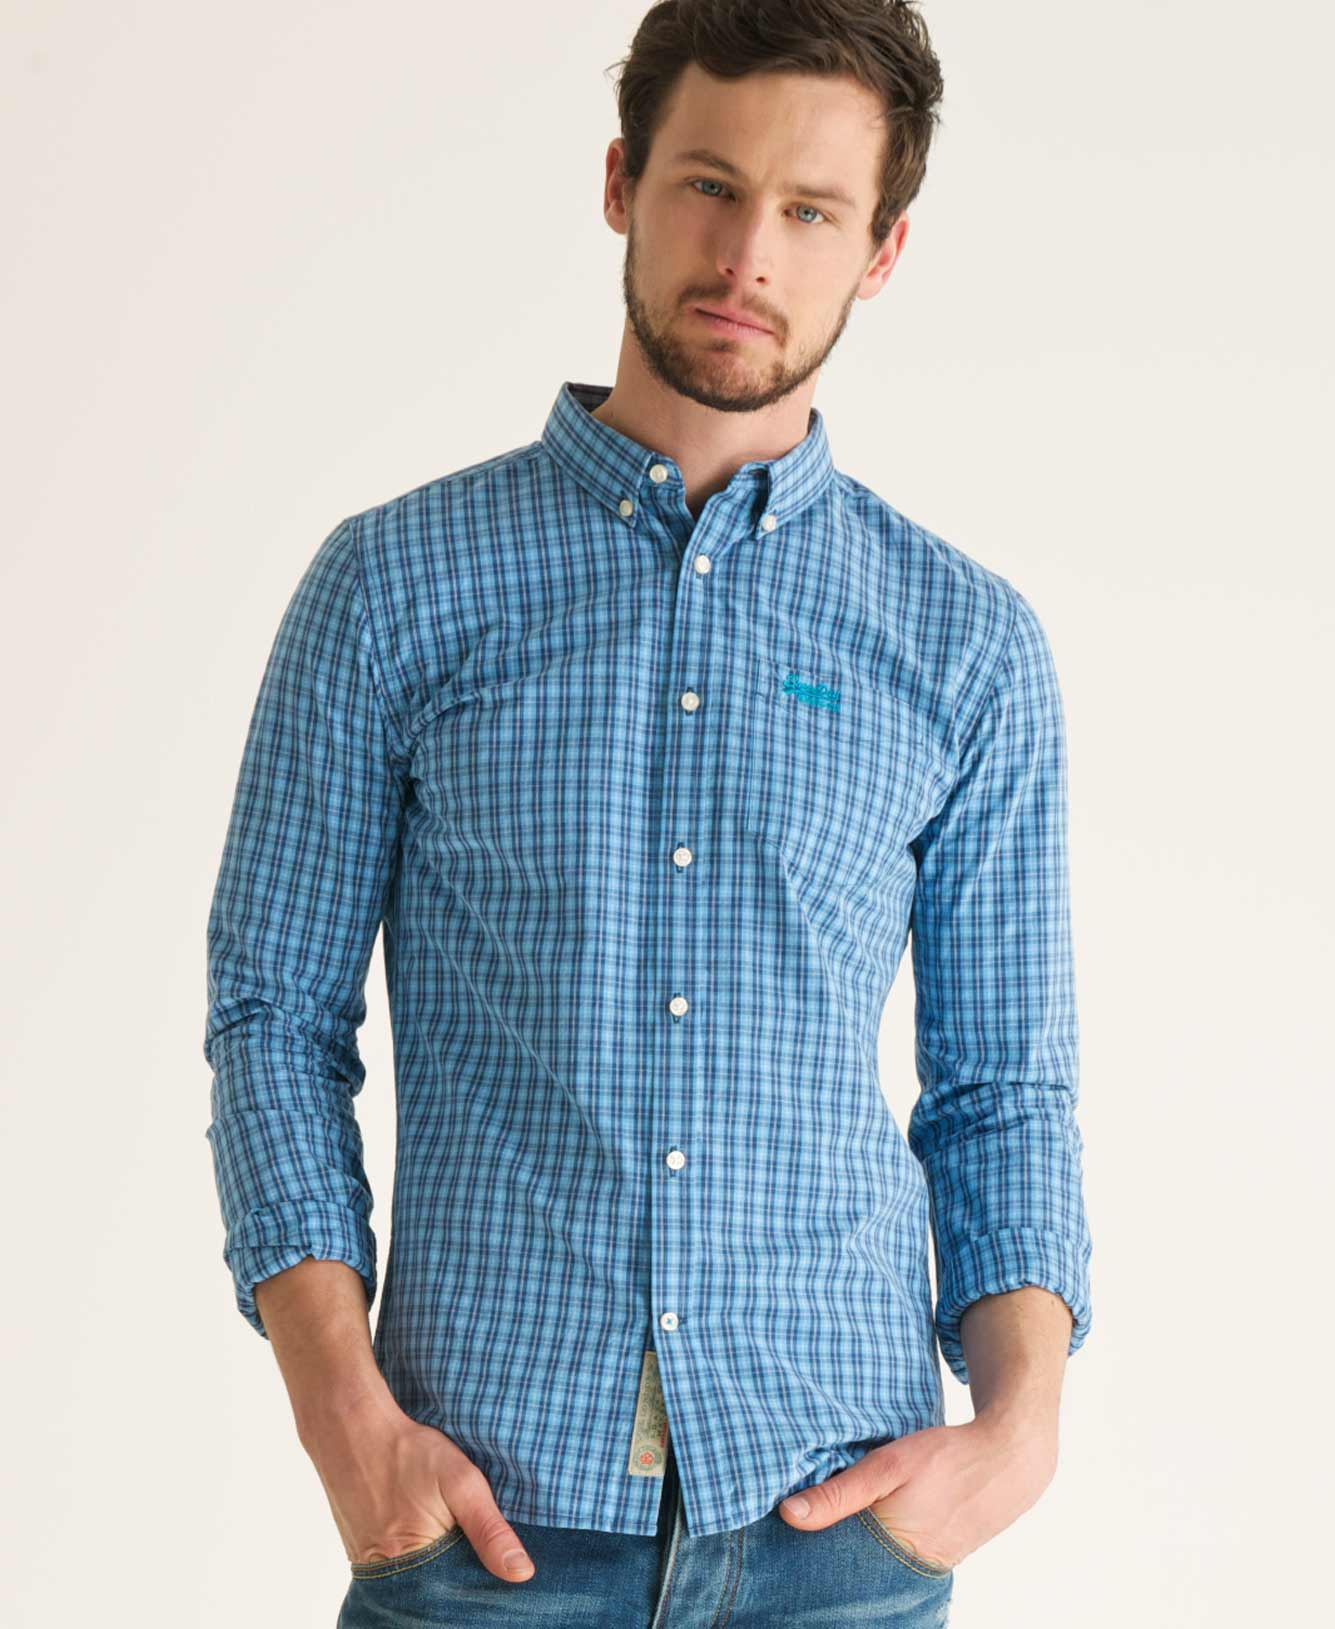 New-Mens-Superdry-London-Button-Down-Shirt-Camden-Surf-Check-Blue-CVH-AB